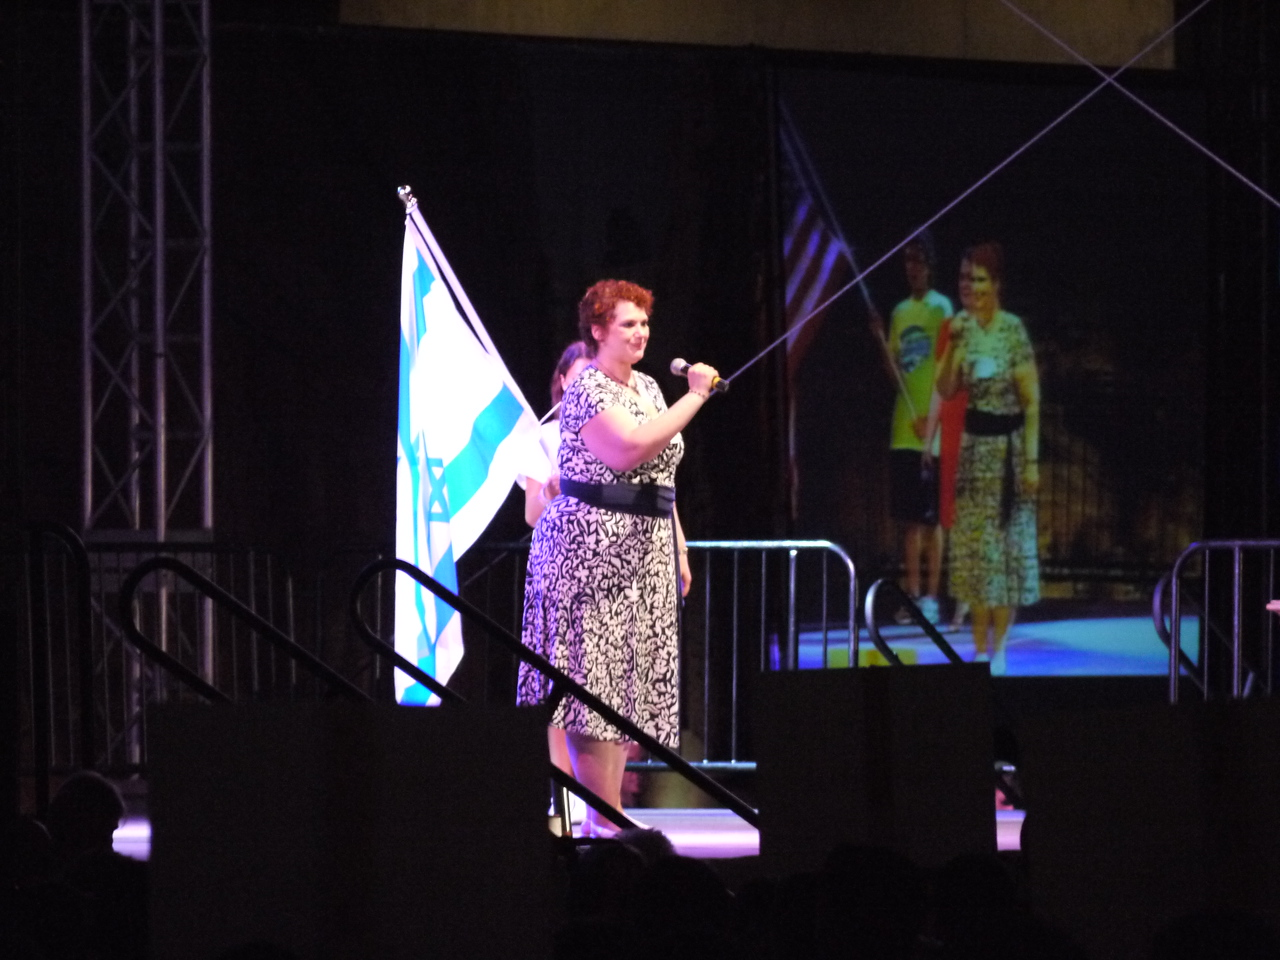 Cantor Michele Friedman of the Montebello Jewish Center about to sing the Israeli national anthem, Hatikva.